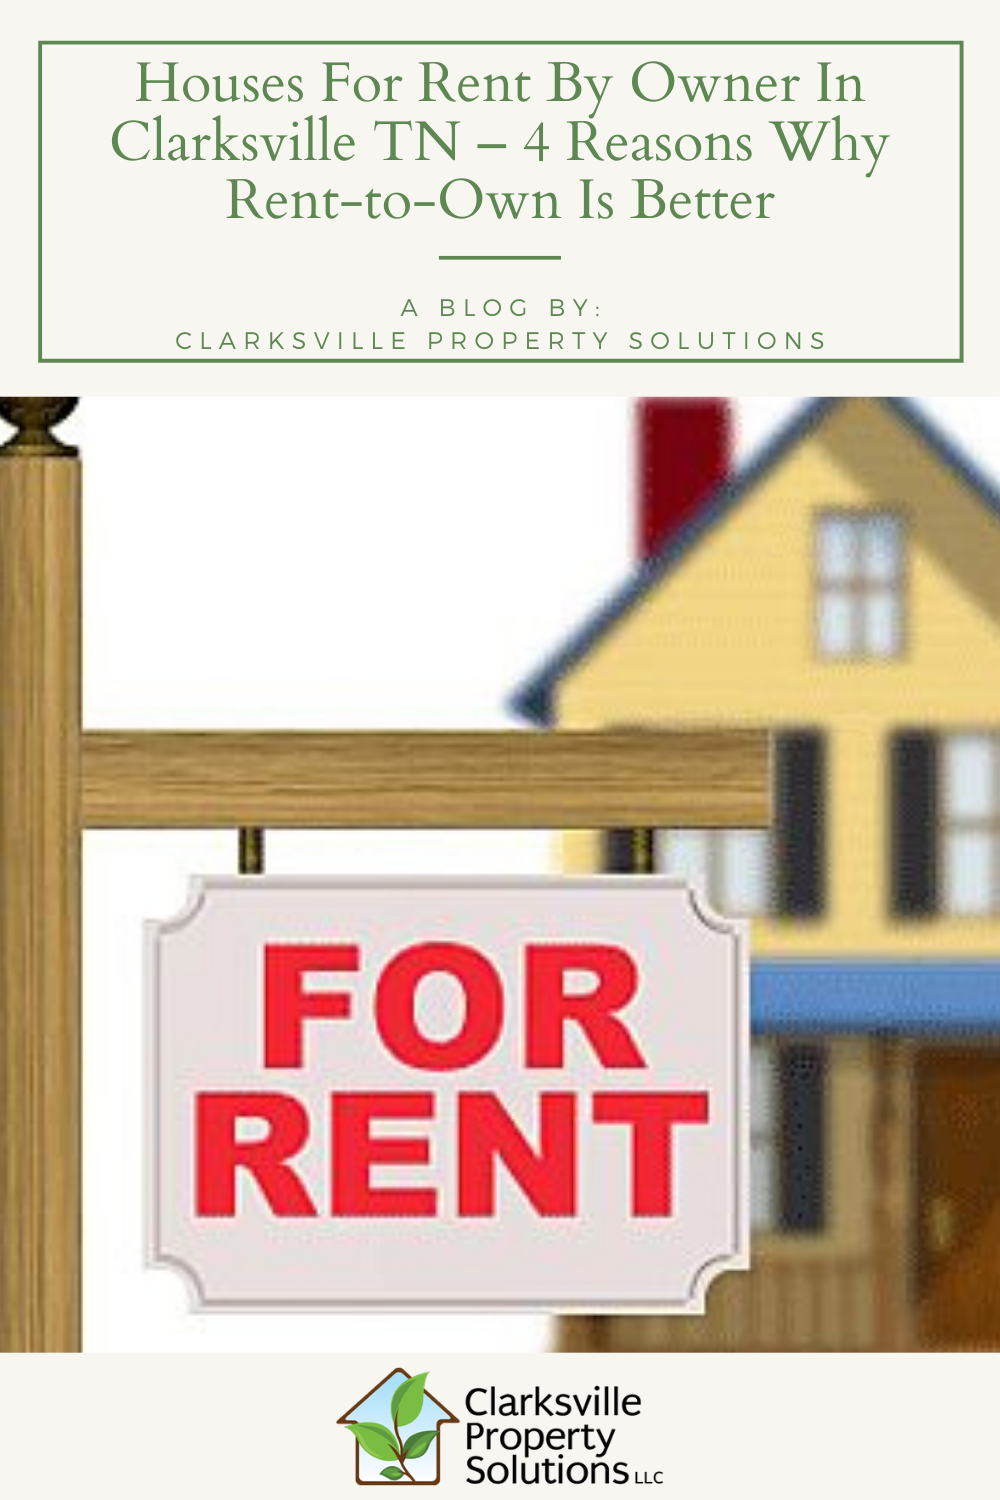 Houses For Rent By Owner In Clarksville Tn 4 Reasons Why Rent To Own Is Better For Rent By Owner Renting A House Looking For Houses